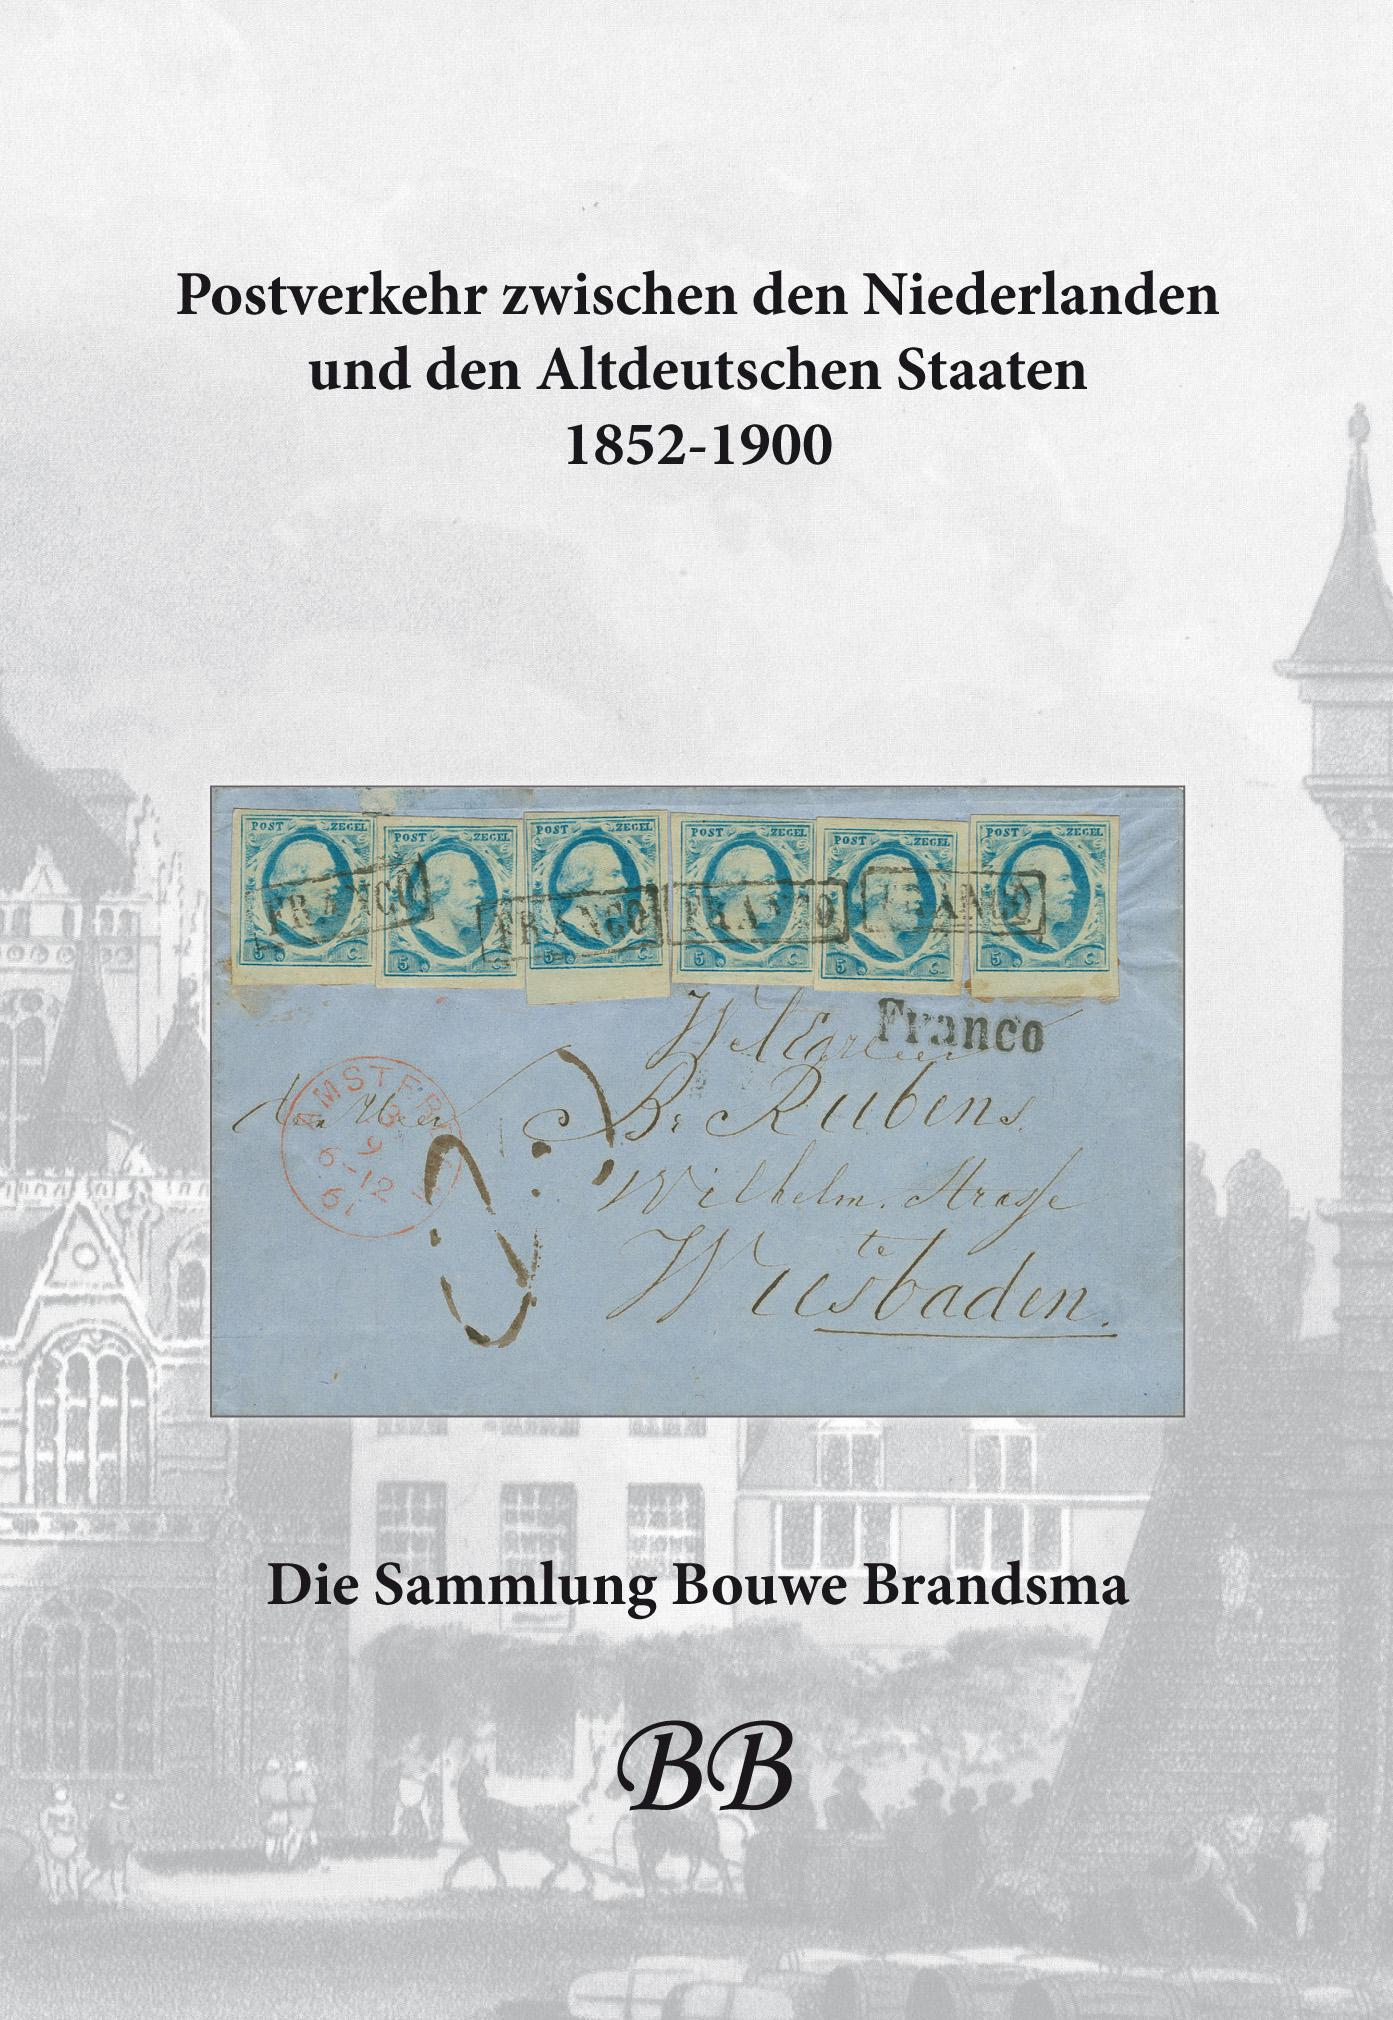 EDITION SPÉCIALE • Postal traffic between the Netherlands and the Old-German States 1852-1900 • The Bouwe Brandsma Collection